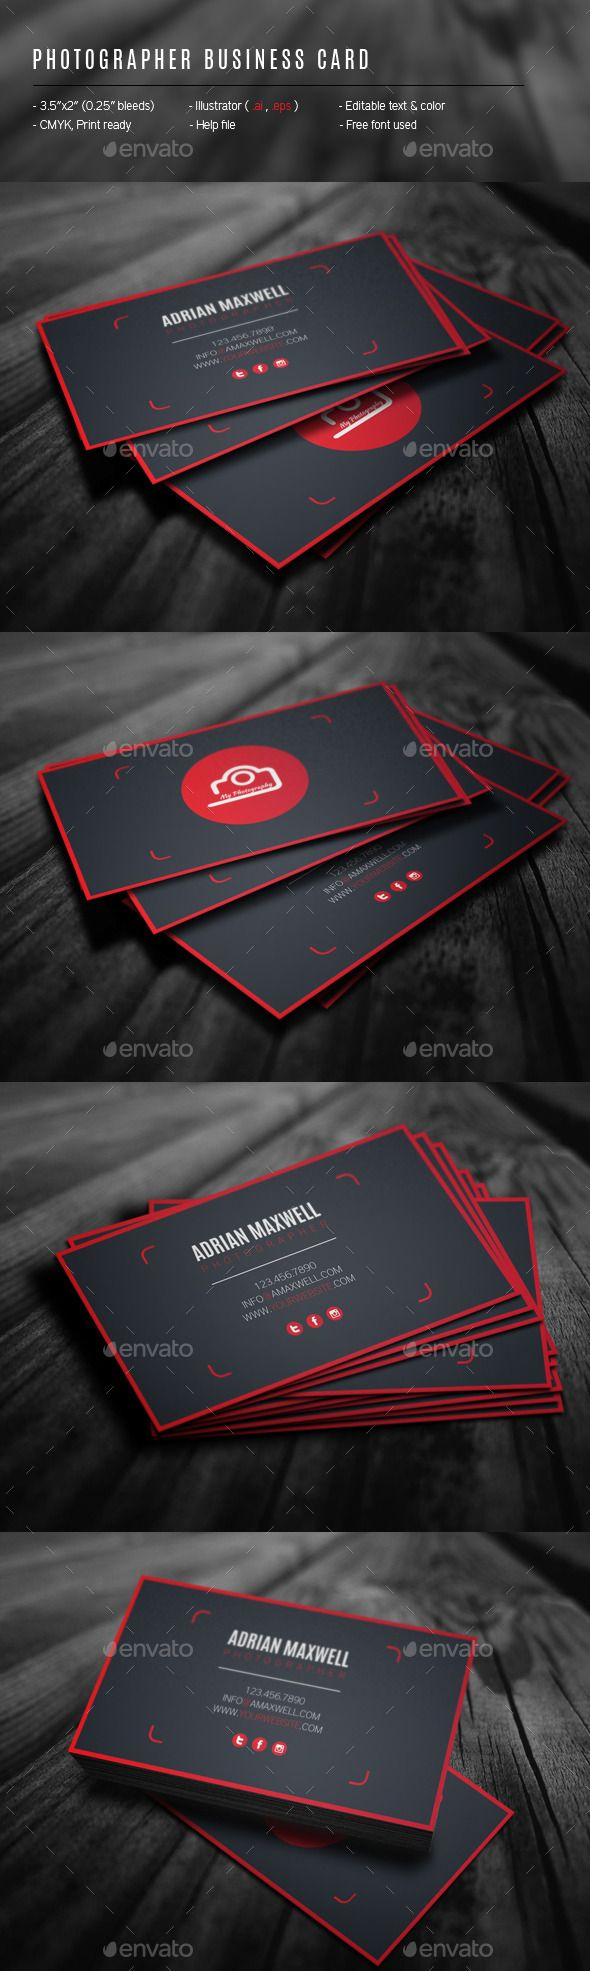 Best Business Card Templates Ideas On Pinterest Business - Best business cards templates